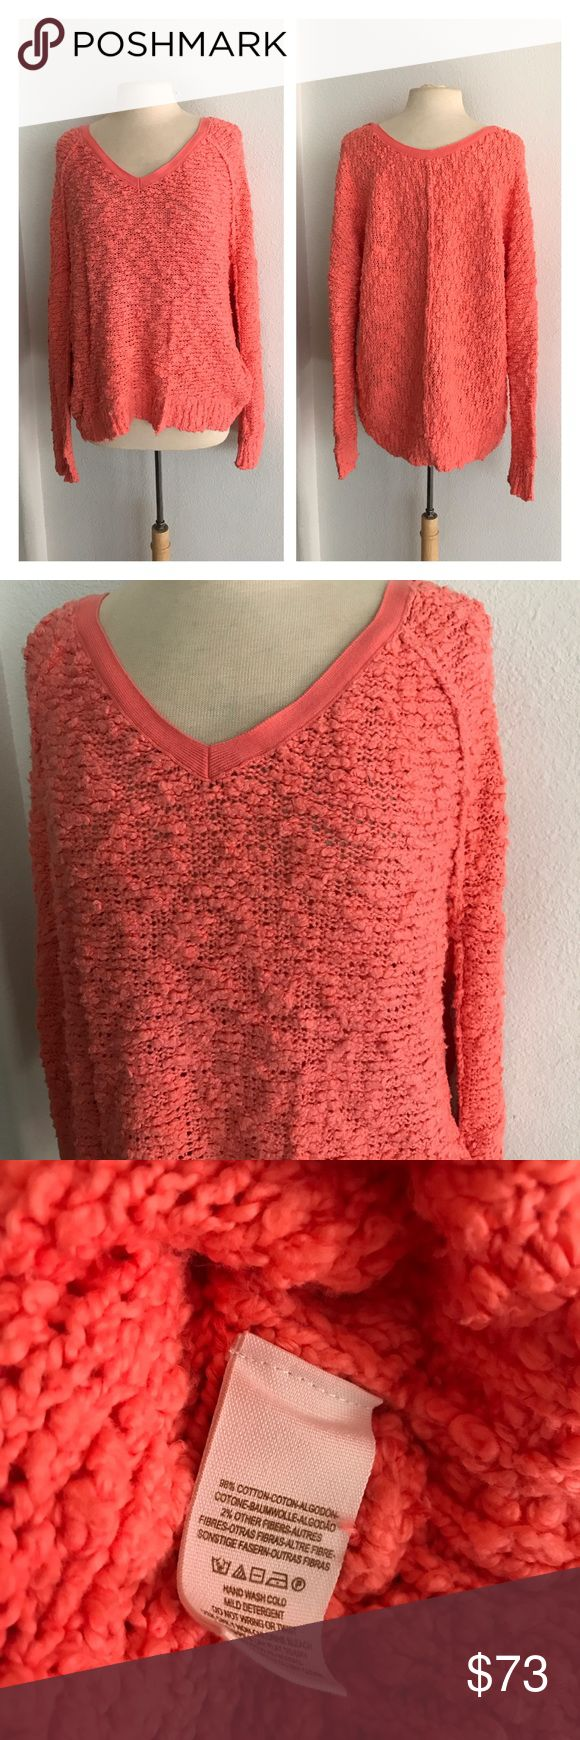 "Free People coral sweater Free People sweater. Size M. Measures 27"" long with a 44"" bust. Coral colored. Popcorn texture. Very very soft! Super stretchy.  ⭐️Brand new with tags ($98) 💲Reasonable offers accepted  ✅Bundle offers Free People Sweaters"